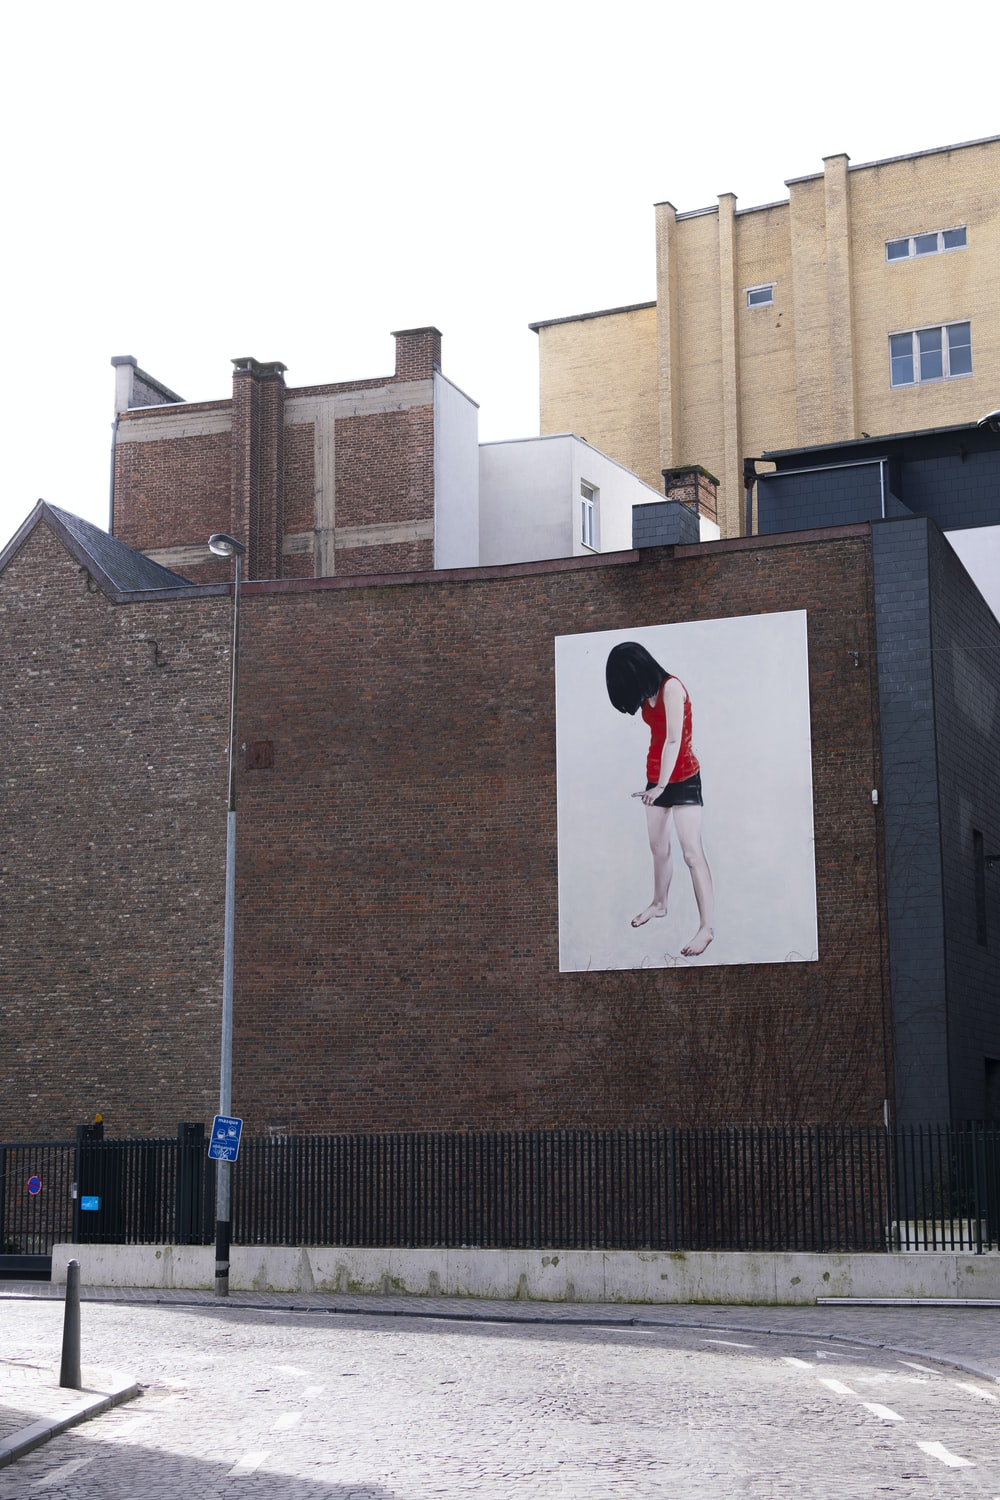 man in red and black jacket standing on gray concrete building during daytime